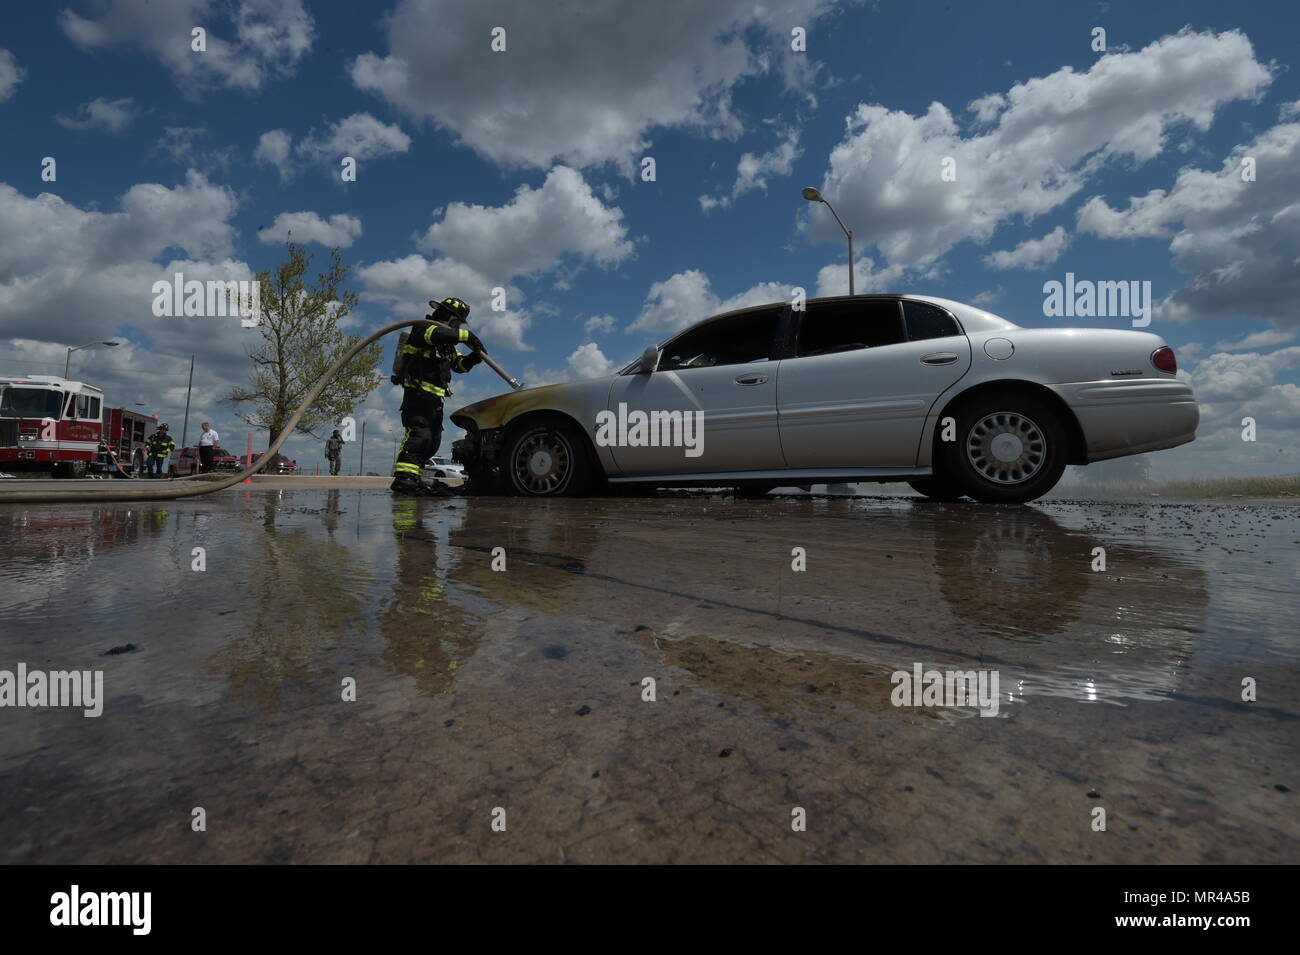 William Green, Tinker Fire and Emergency Services firefighter, sprays water inside the engine compartment while working to extinguish a fire May 4, 2017, Tinker Air Force Base, Oklahoma. The privately-owned vehicle developed mechanical trouble and caught fire near the Oklahoma City Air Logistics Complexs' building 9001. The fire was quickly and safely extinguished by Tinker Fire and Emergency Services, a division of the 72nd Civil Engineer Squadron. (U.S. Air Force photo/Greg L. Davis) - Stock Image